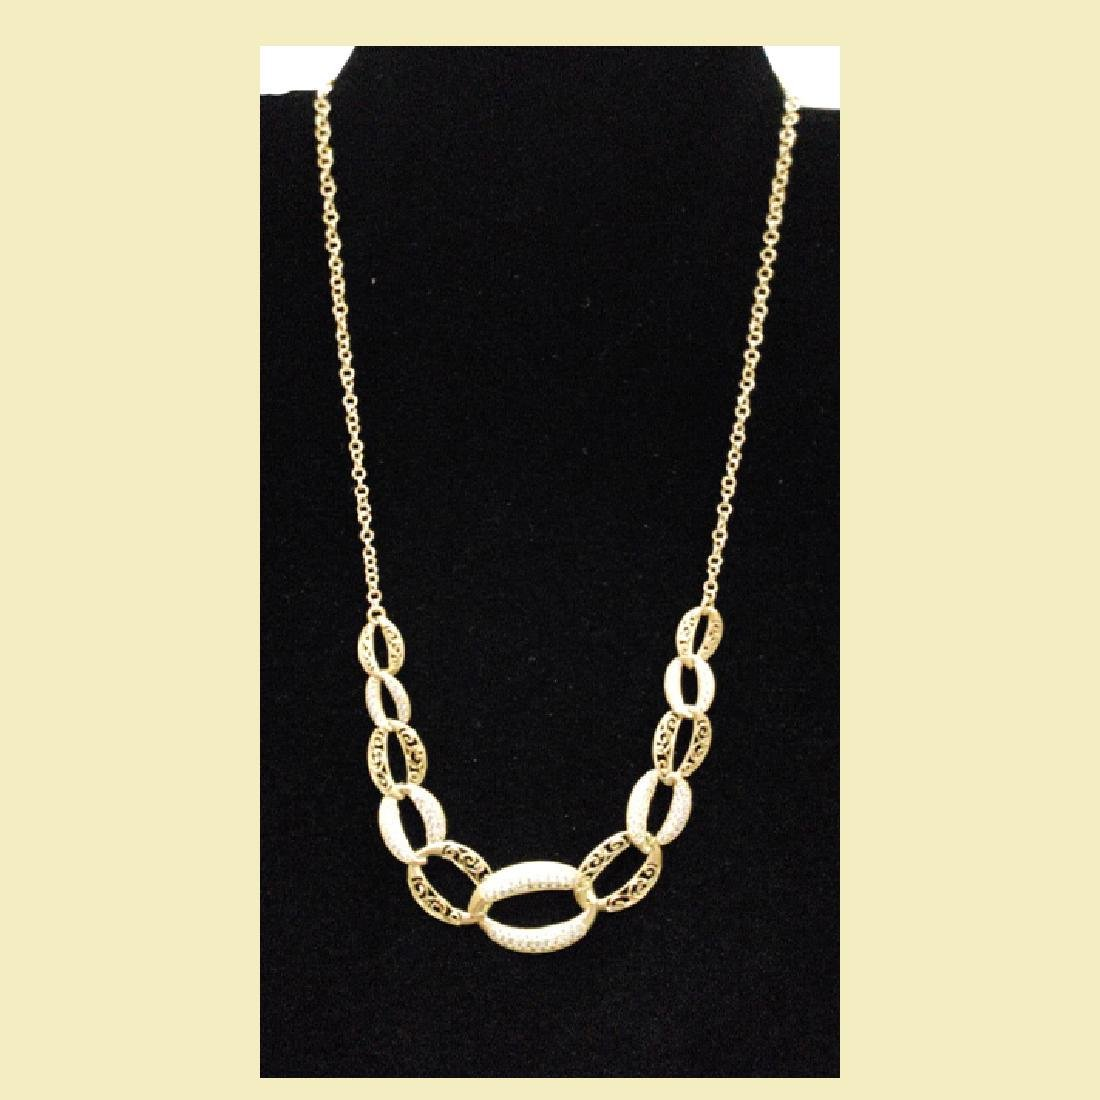 Set of stunning yellow gold necklace 14k with linked - 4